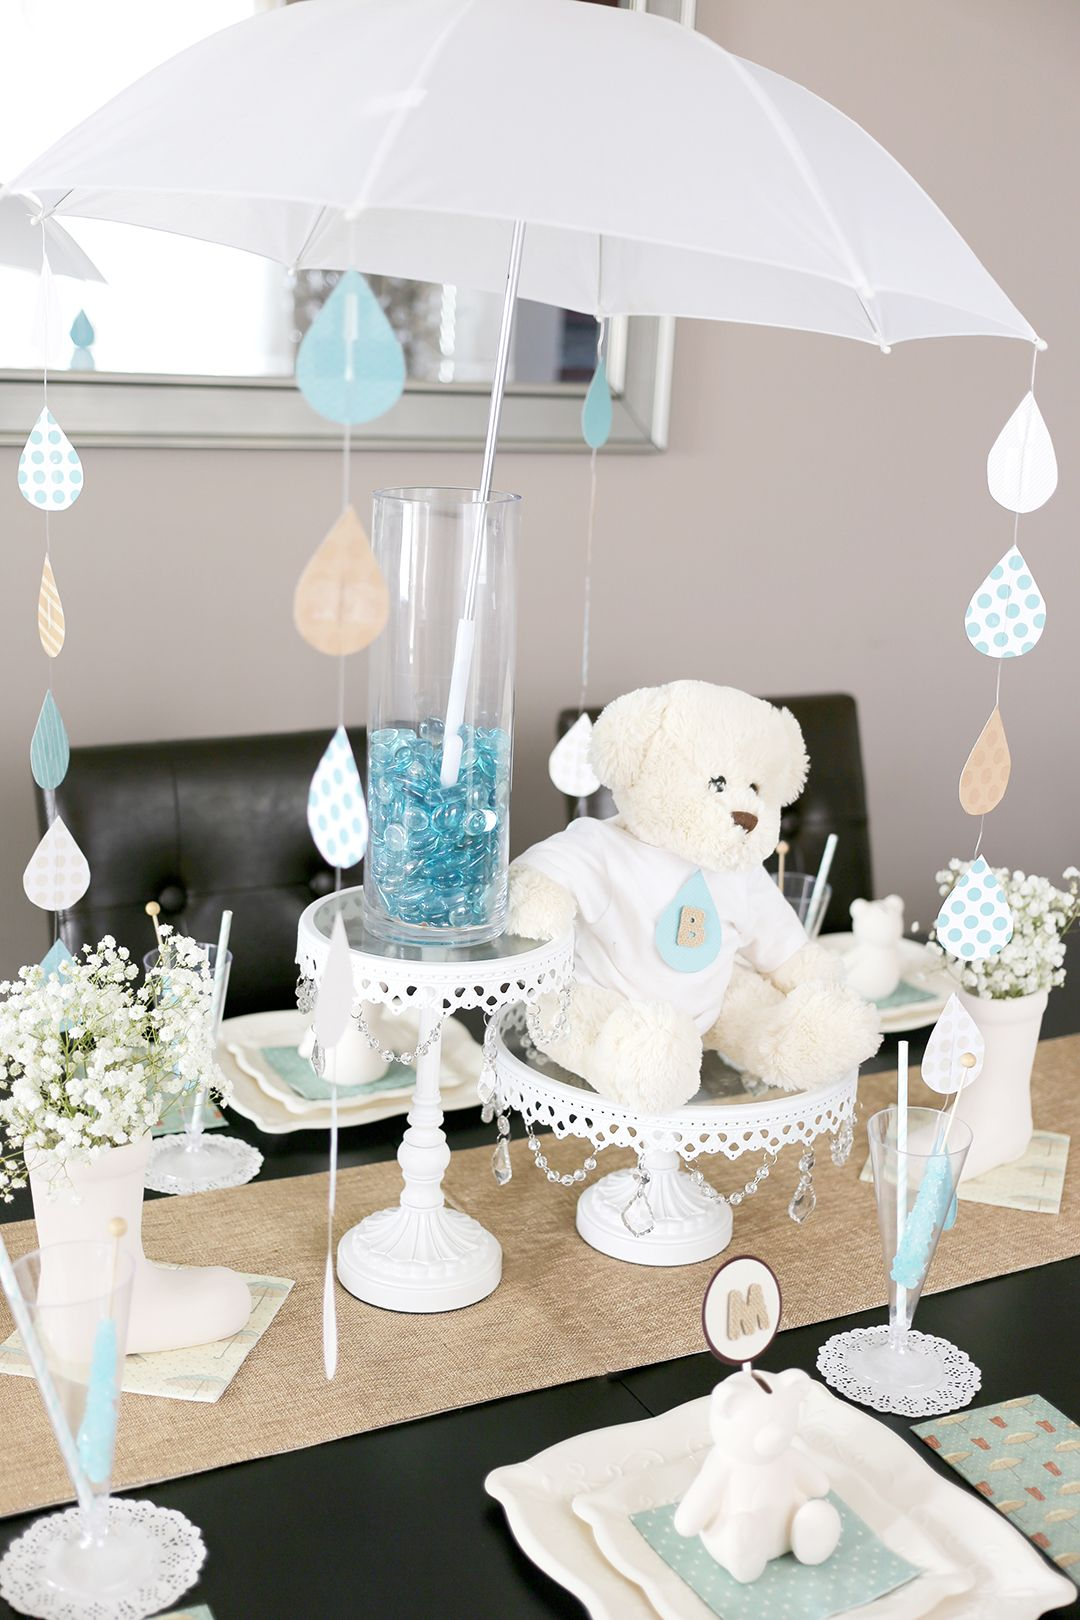 Let It Rain Baby Shower + DIY Umbrella Centerpiece! #SoireeEventDesign